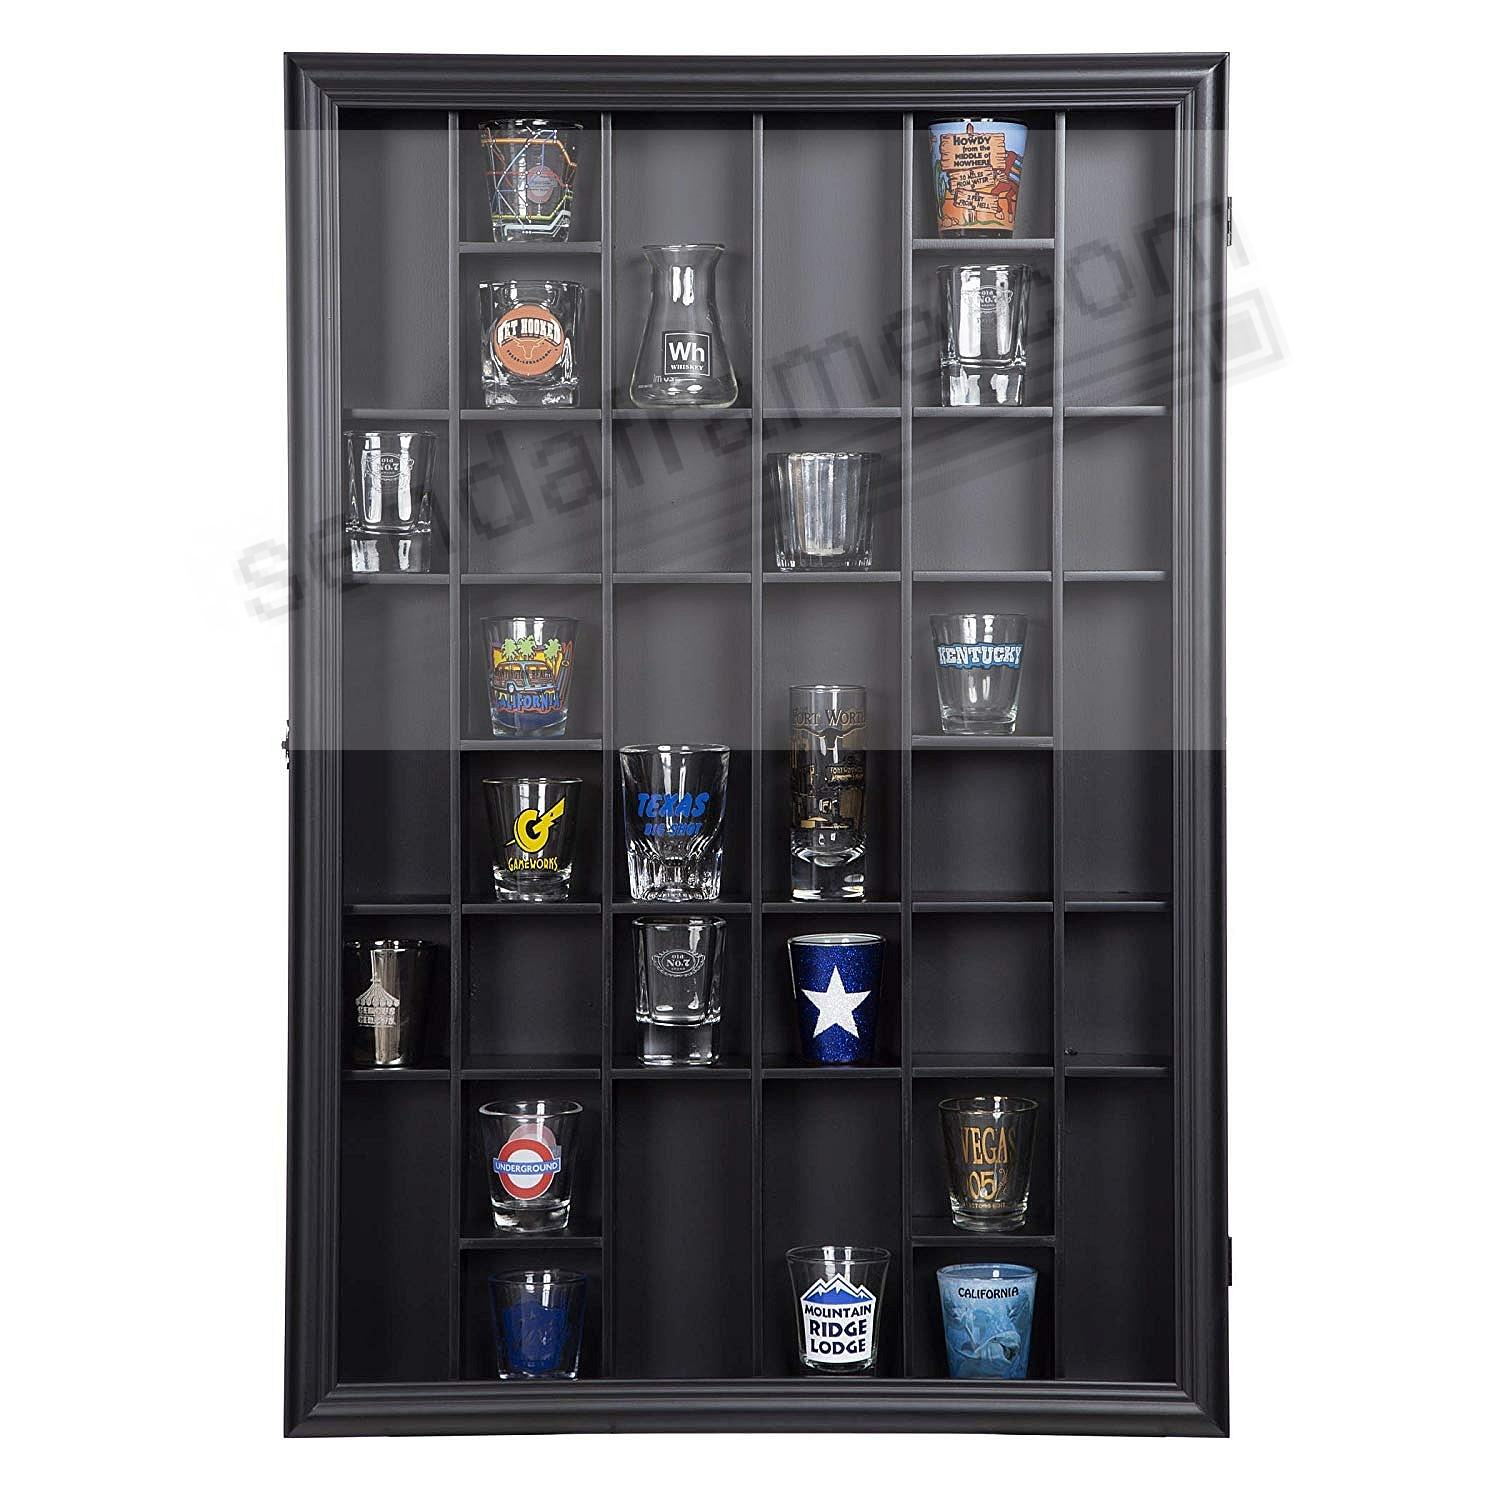 Gallery Solutions 17x21 36-Opening Display Case with Hinged Front in Black